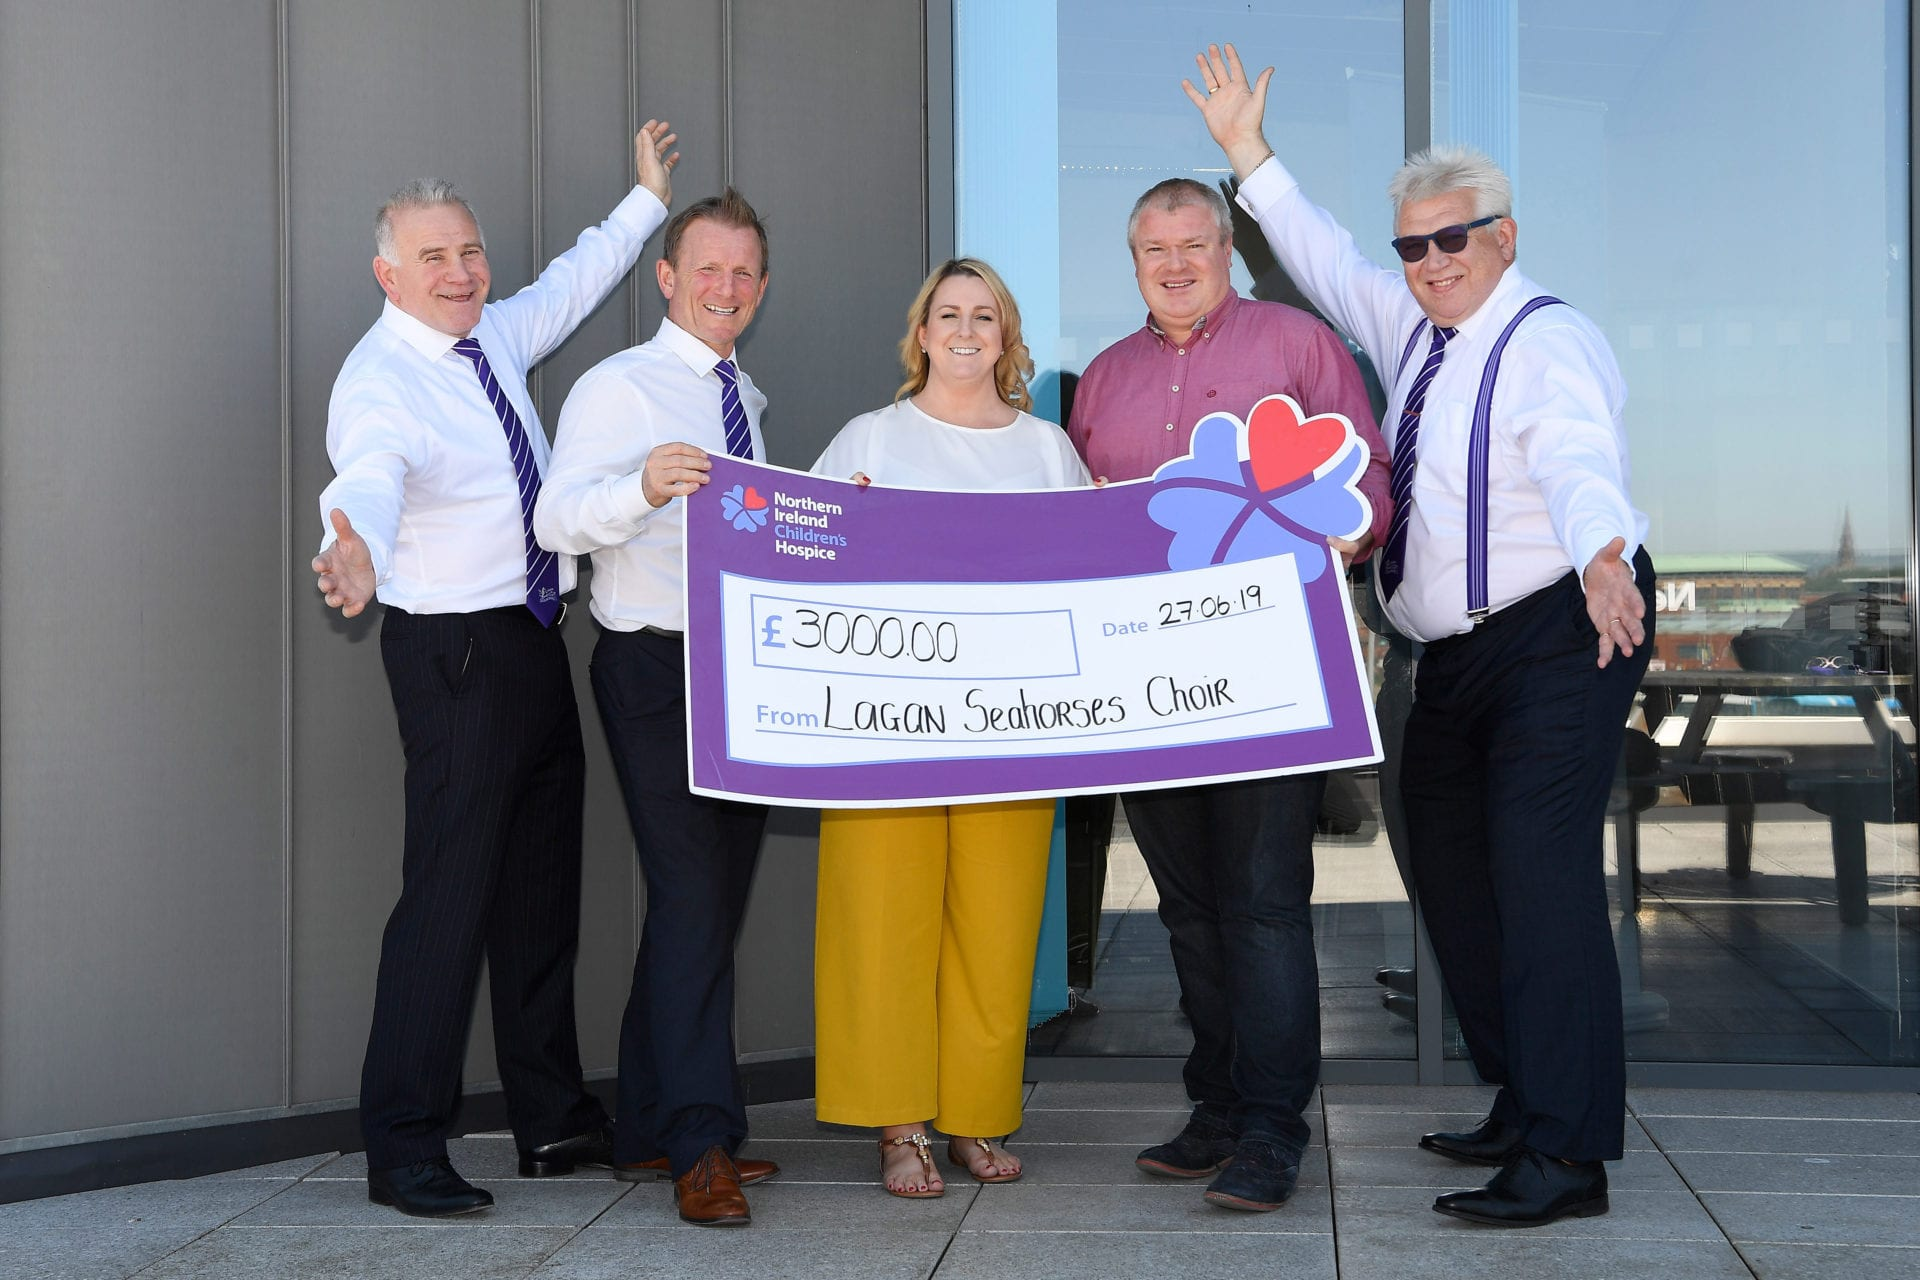 Pictured at the cheque presentation are (from l-r): Paul Hart, Treasurer, Lagan Seahorses, Peter Russell, Lagan Seahorses, Lauren Doherty, Head of Marketing, NI Hospice, Paddy O'Hagan, Neueda COO and Noel Brady, Lagan Seahorses.